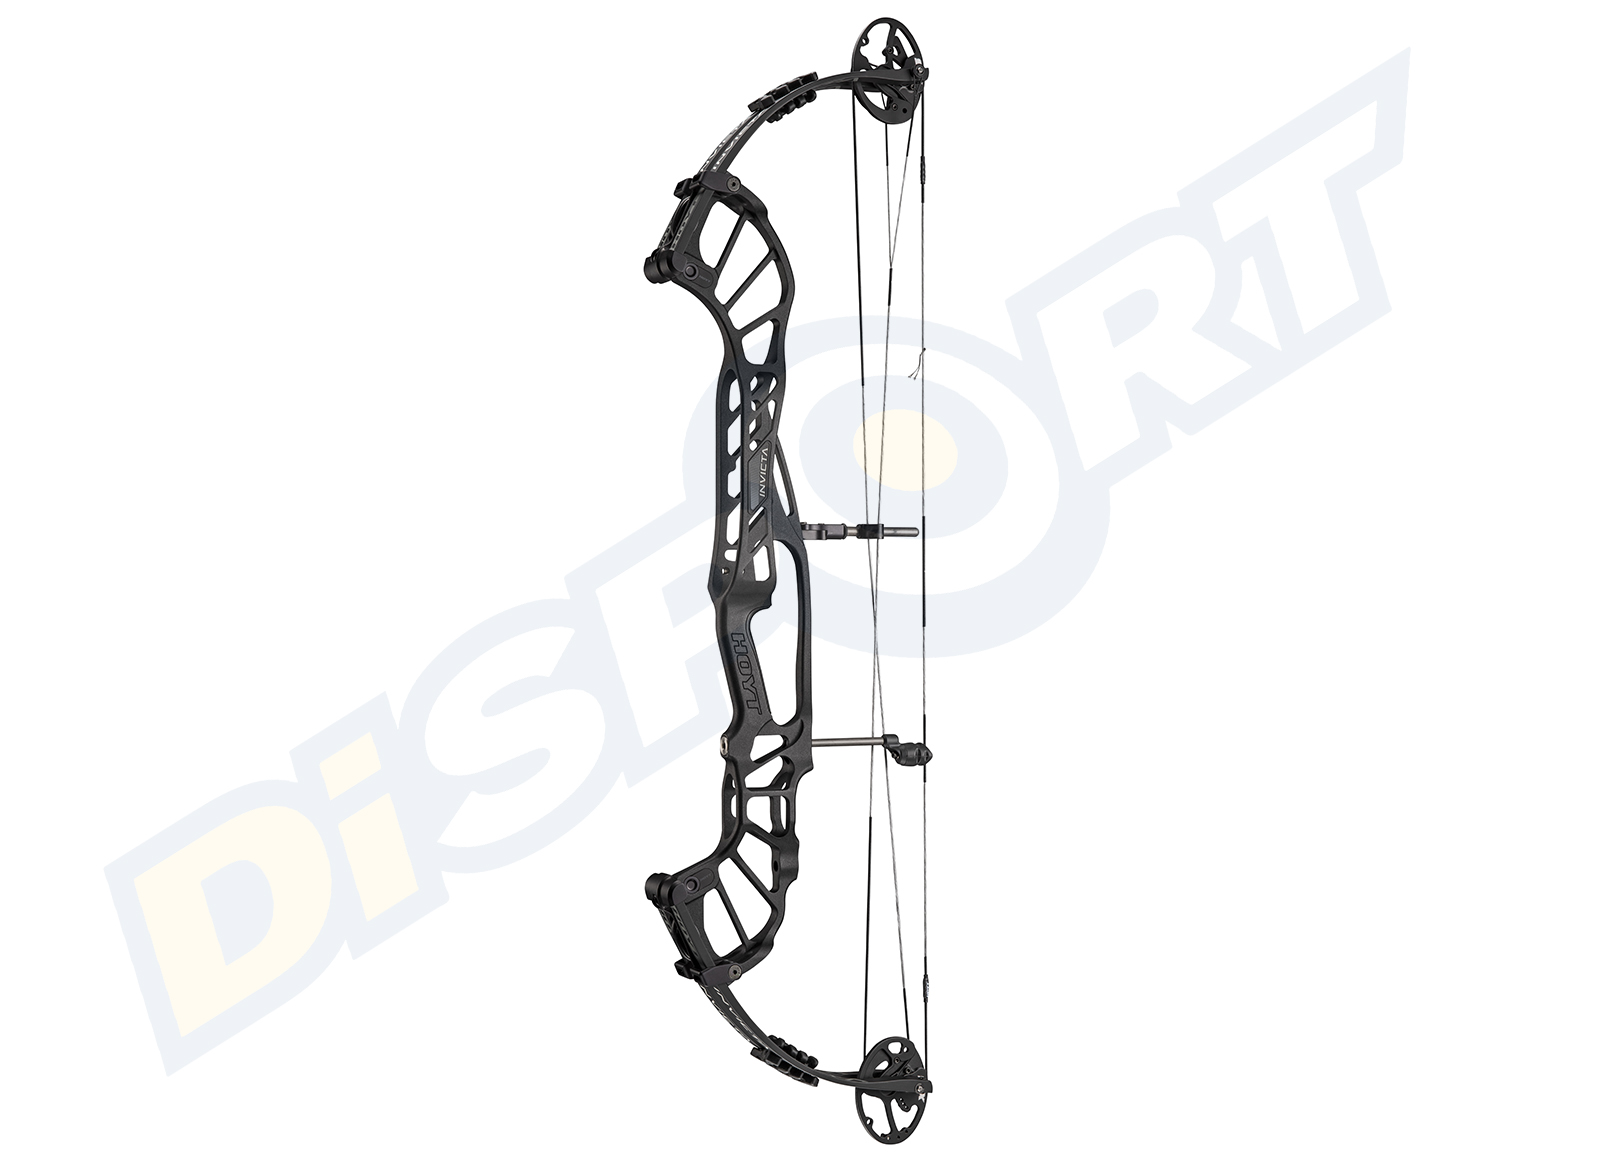 HOYT COMPOUND INVICTA 37 DCX 2020 BLACKOUT